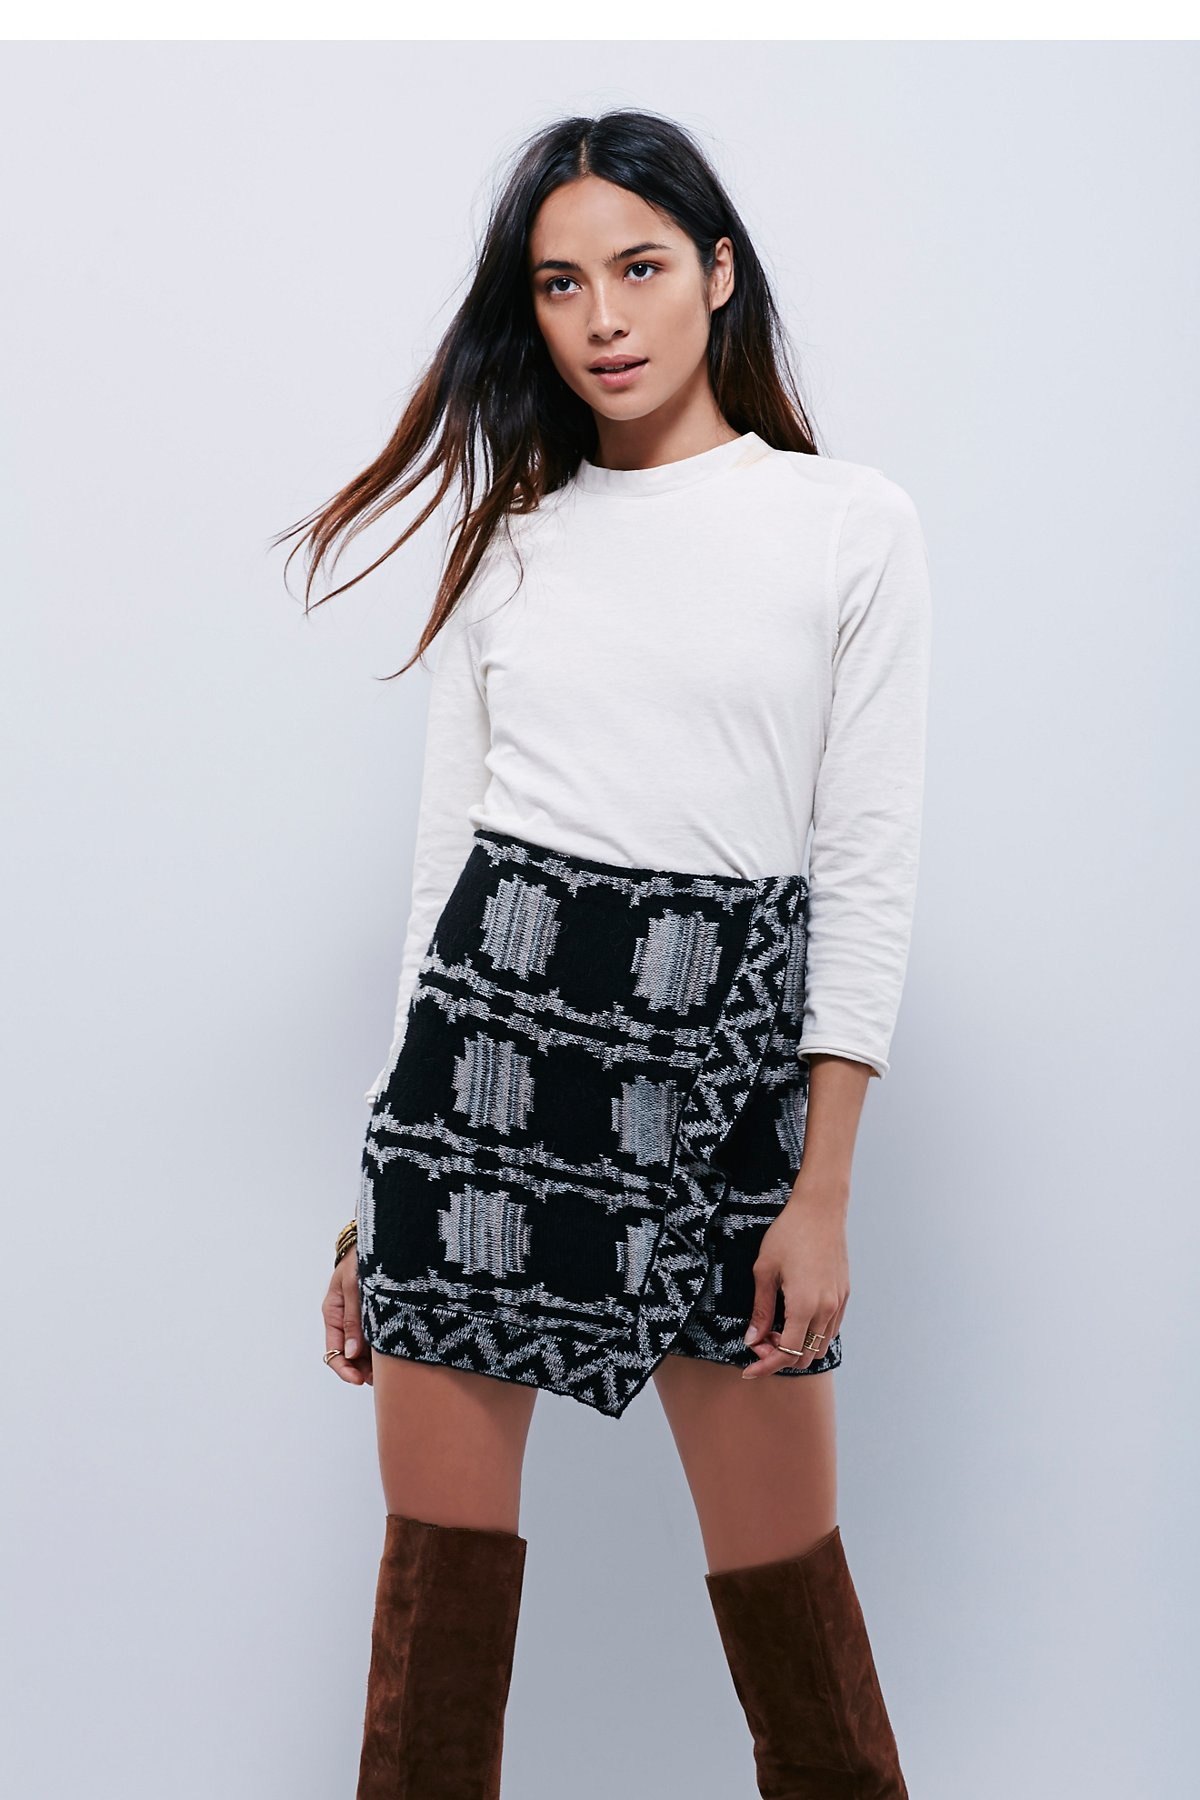 Wrapped in You Blanket Skirt